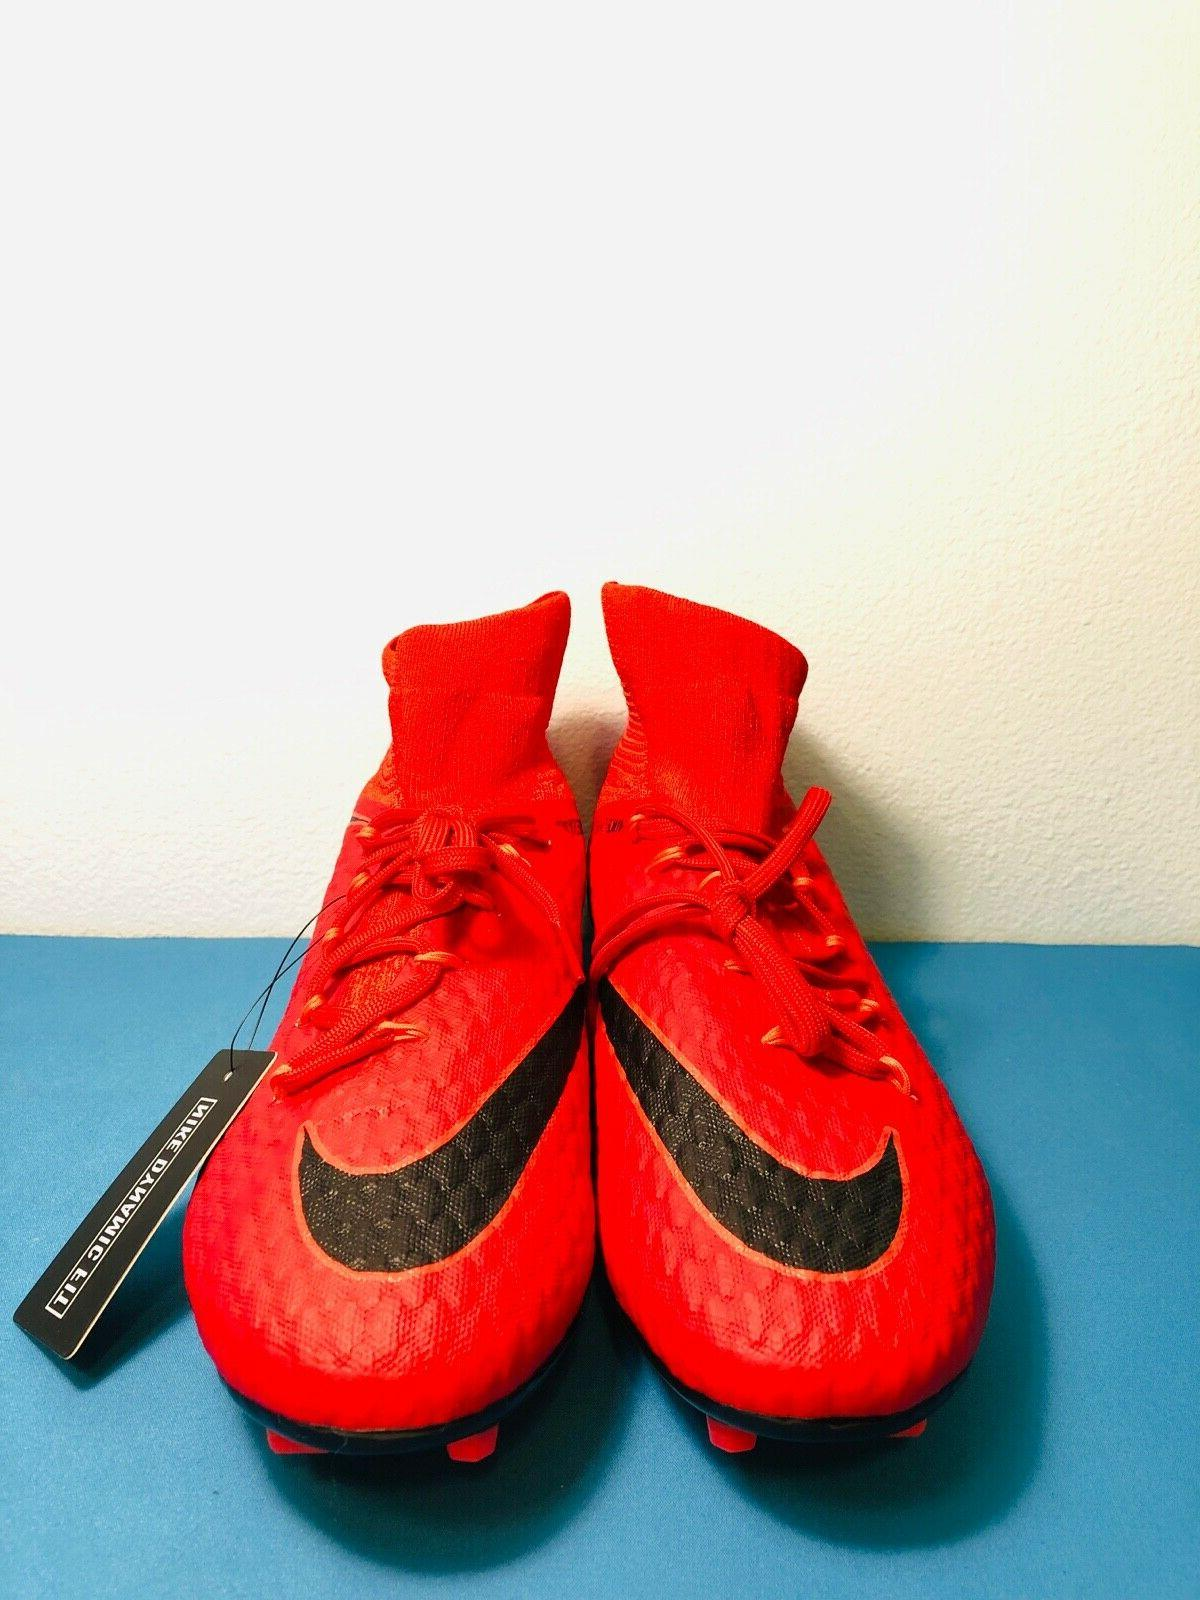 Nike Hypervenom Phatal 3 FG Soccer Cleats, Red Crimson MSRP $169.99